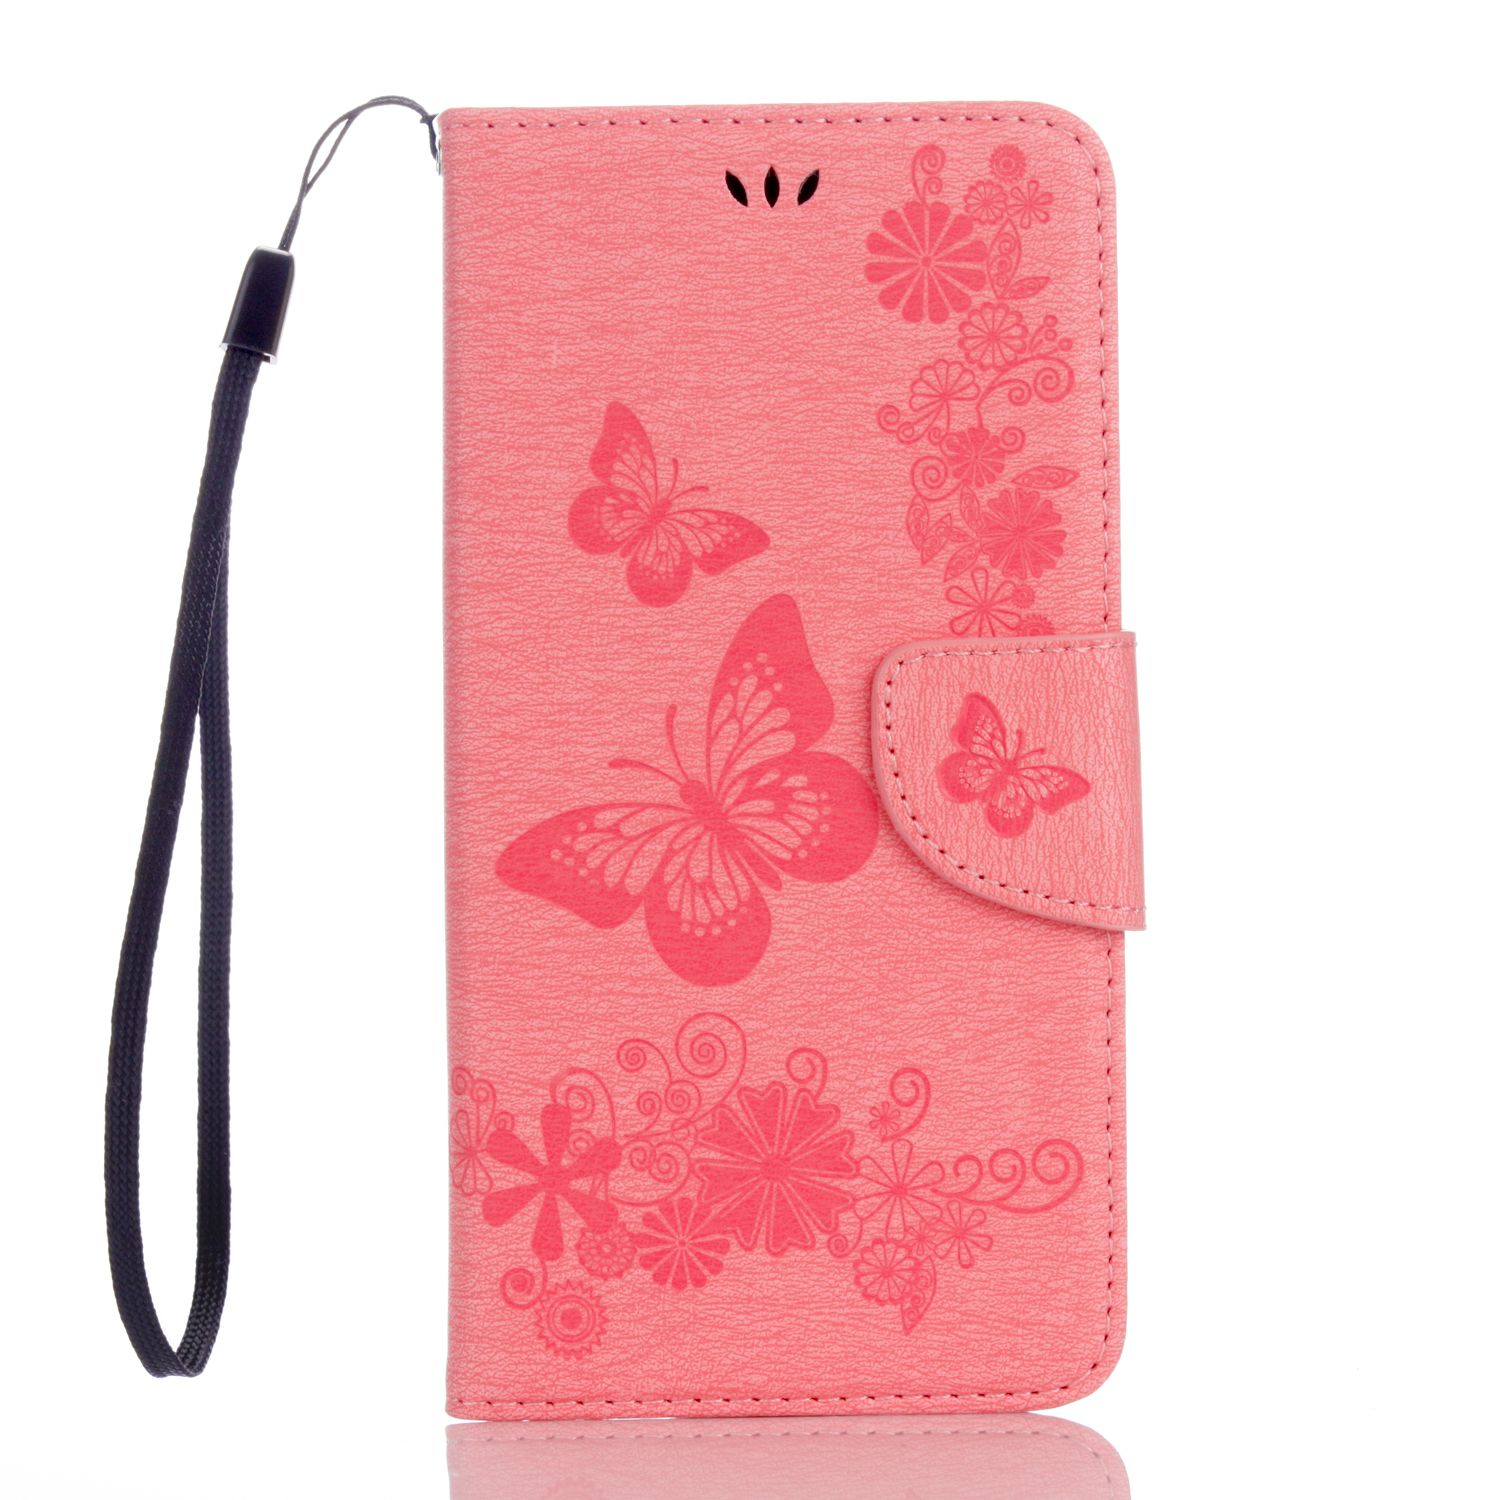 Flip Case For Google Pixel XL Nexus M1 Global HTC Marlin Leather Case Mobile Phone Cover For Google Pixel XL Butterfly Cases